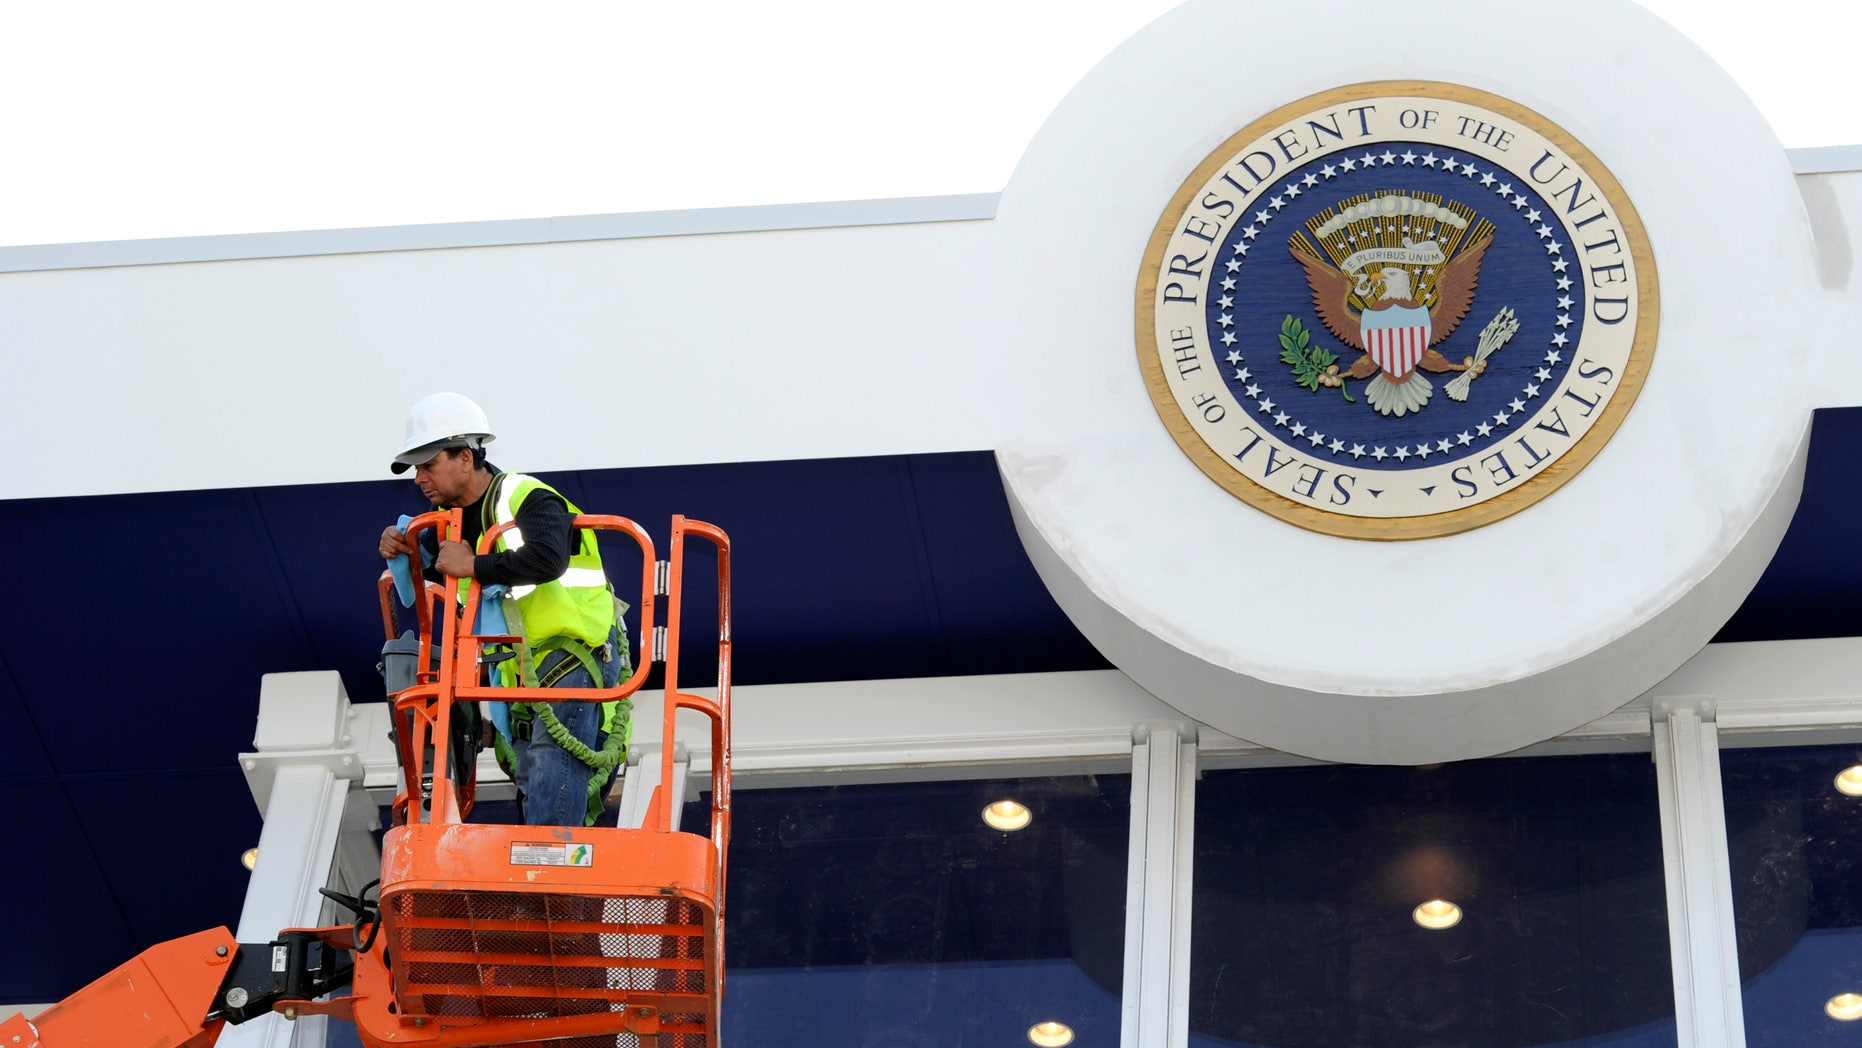 Workers use a hydraulic lift to position themselves to clean the bullet-proof glass under the Seal of the President on the inaugural reviewing stand in front of the White House in Washington January 12, 2013. U.S. President Barack Obama, family and dignitaries will watch the parade from the stand, after the Presidential Inauguration on January 21, 2013.         REUTERS/Mike Theiler (UNITED STATES - Tags: POLITICS) - RTR3CD6F